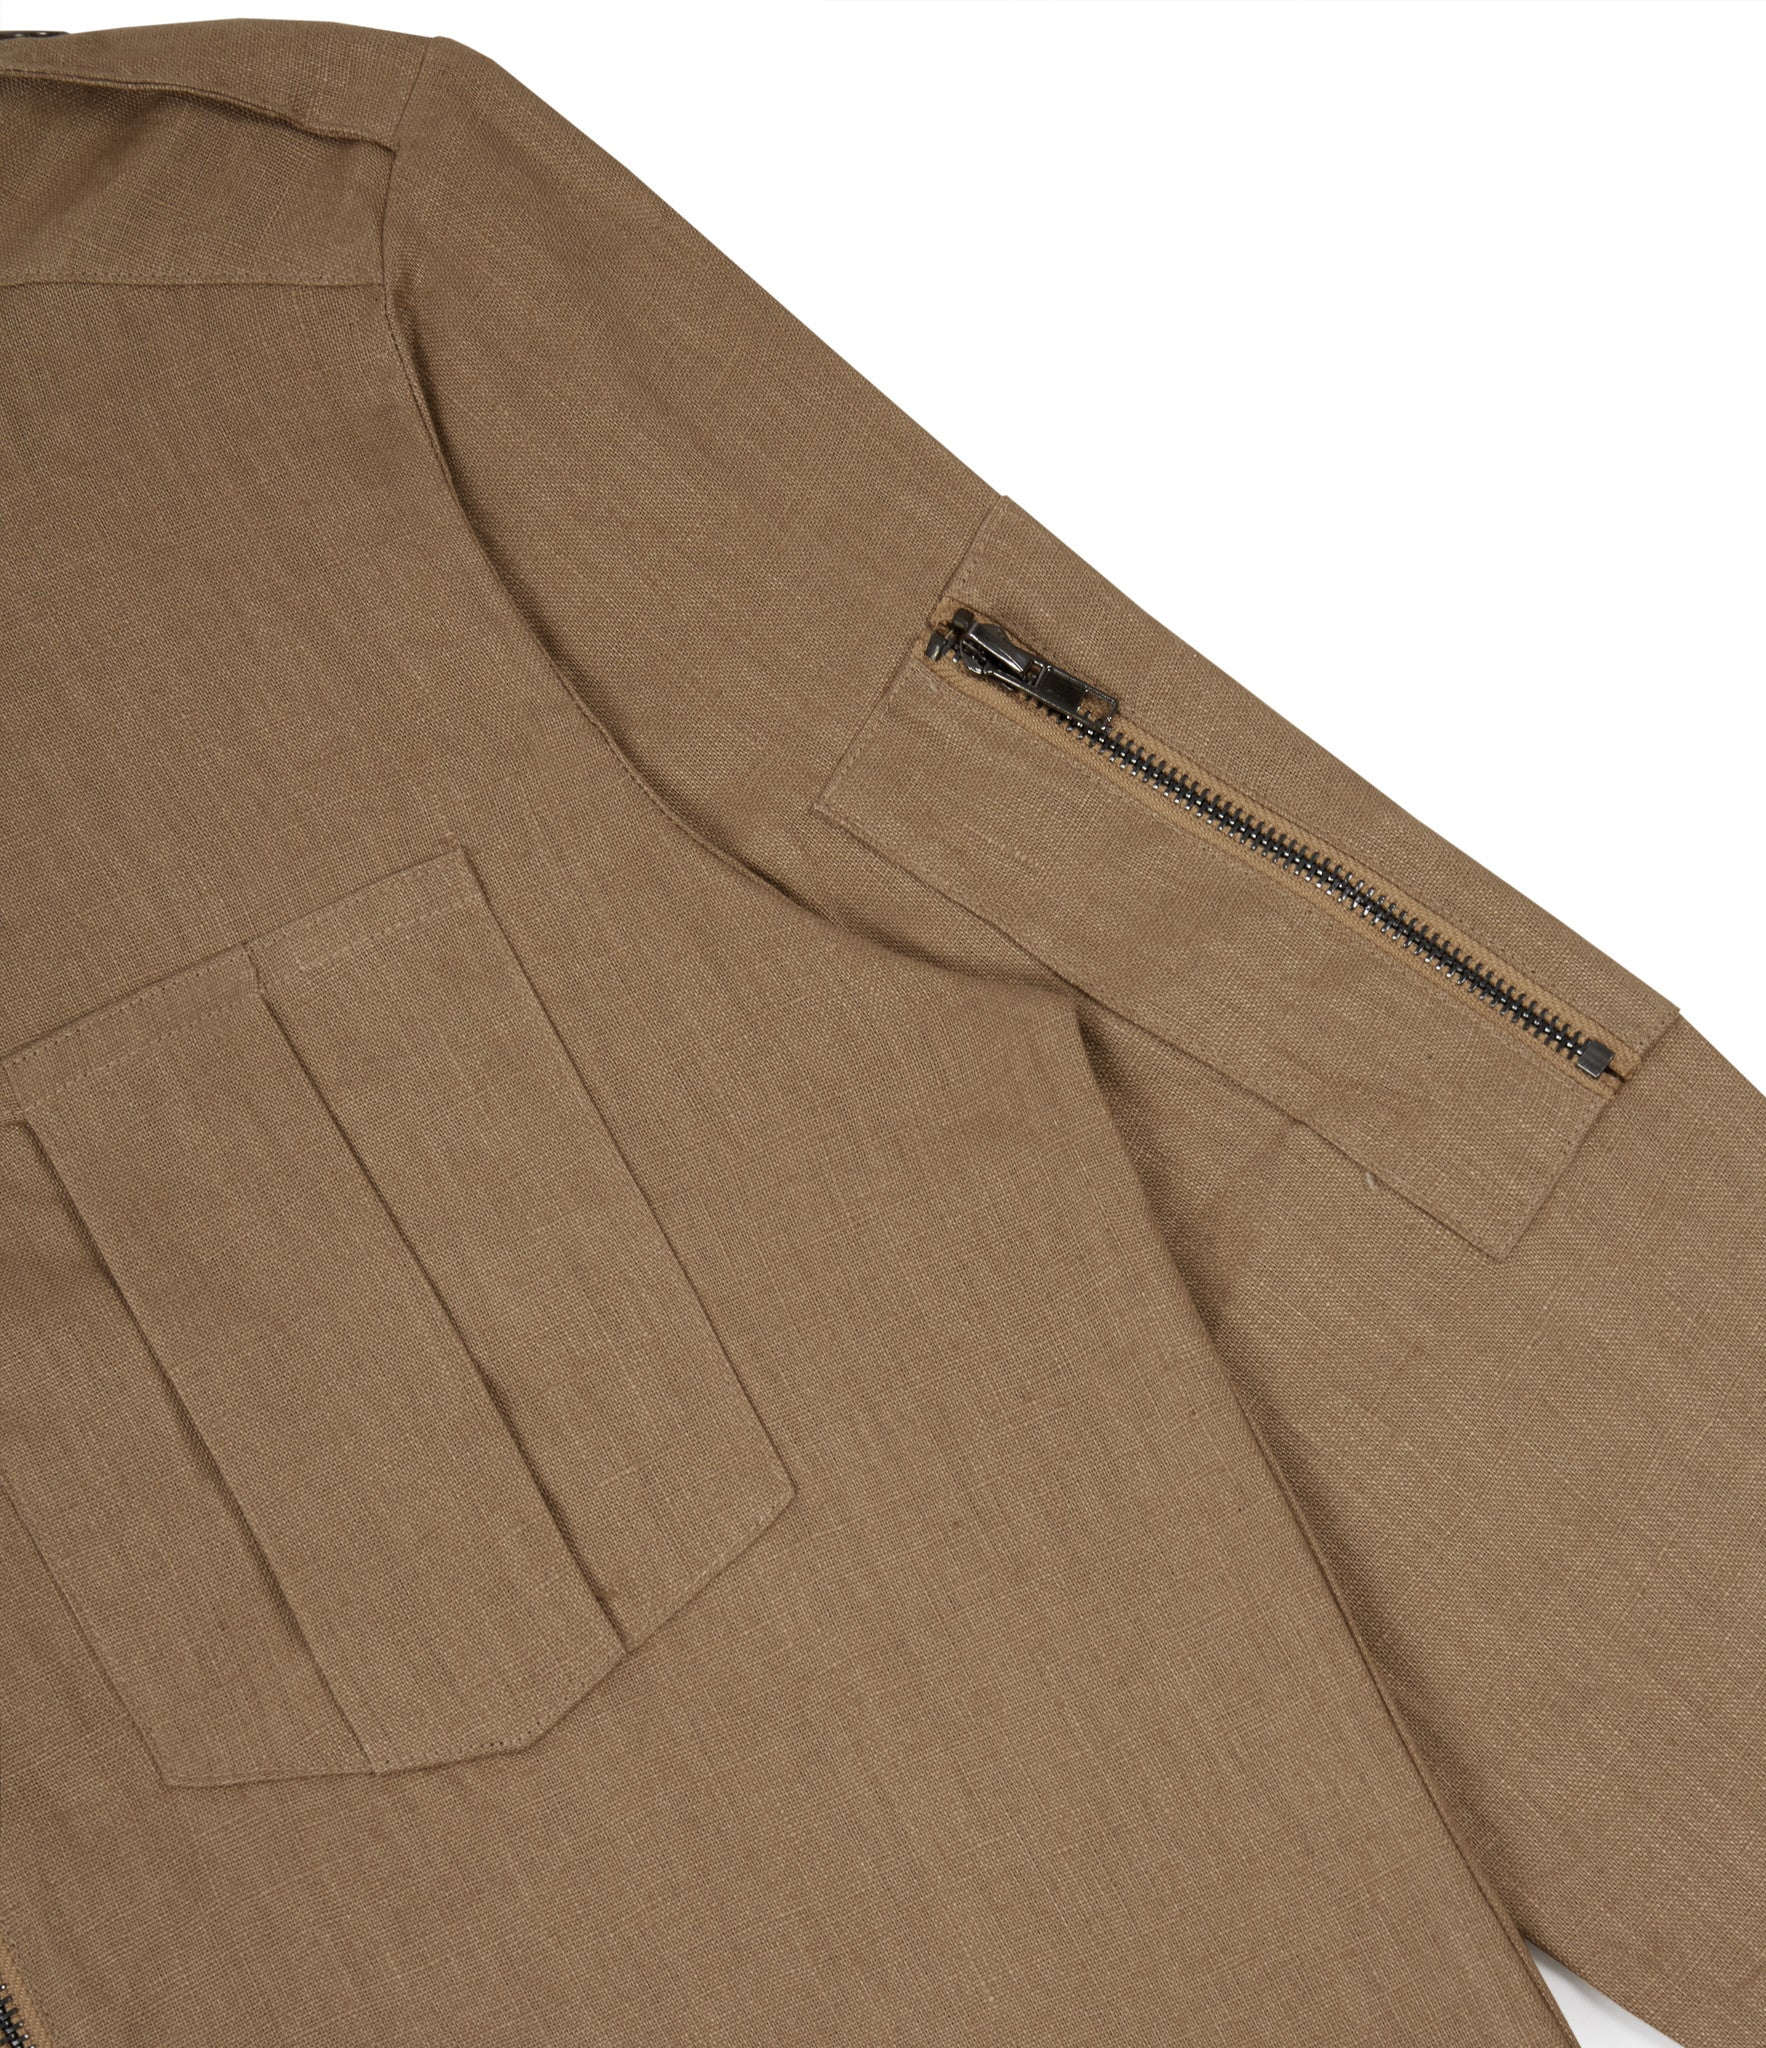 SH273 Exile Military Shirt - Tan - underated london - underatedco - 6